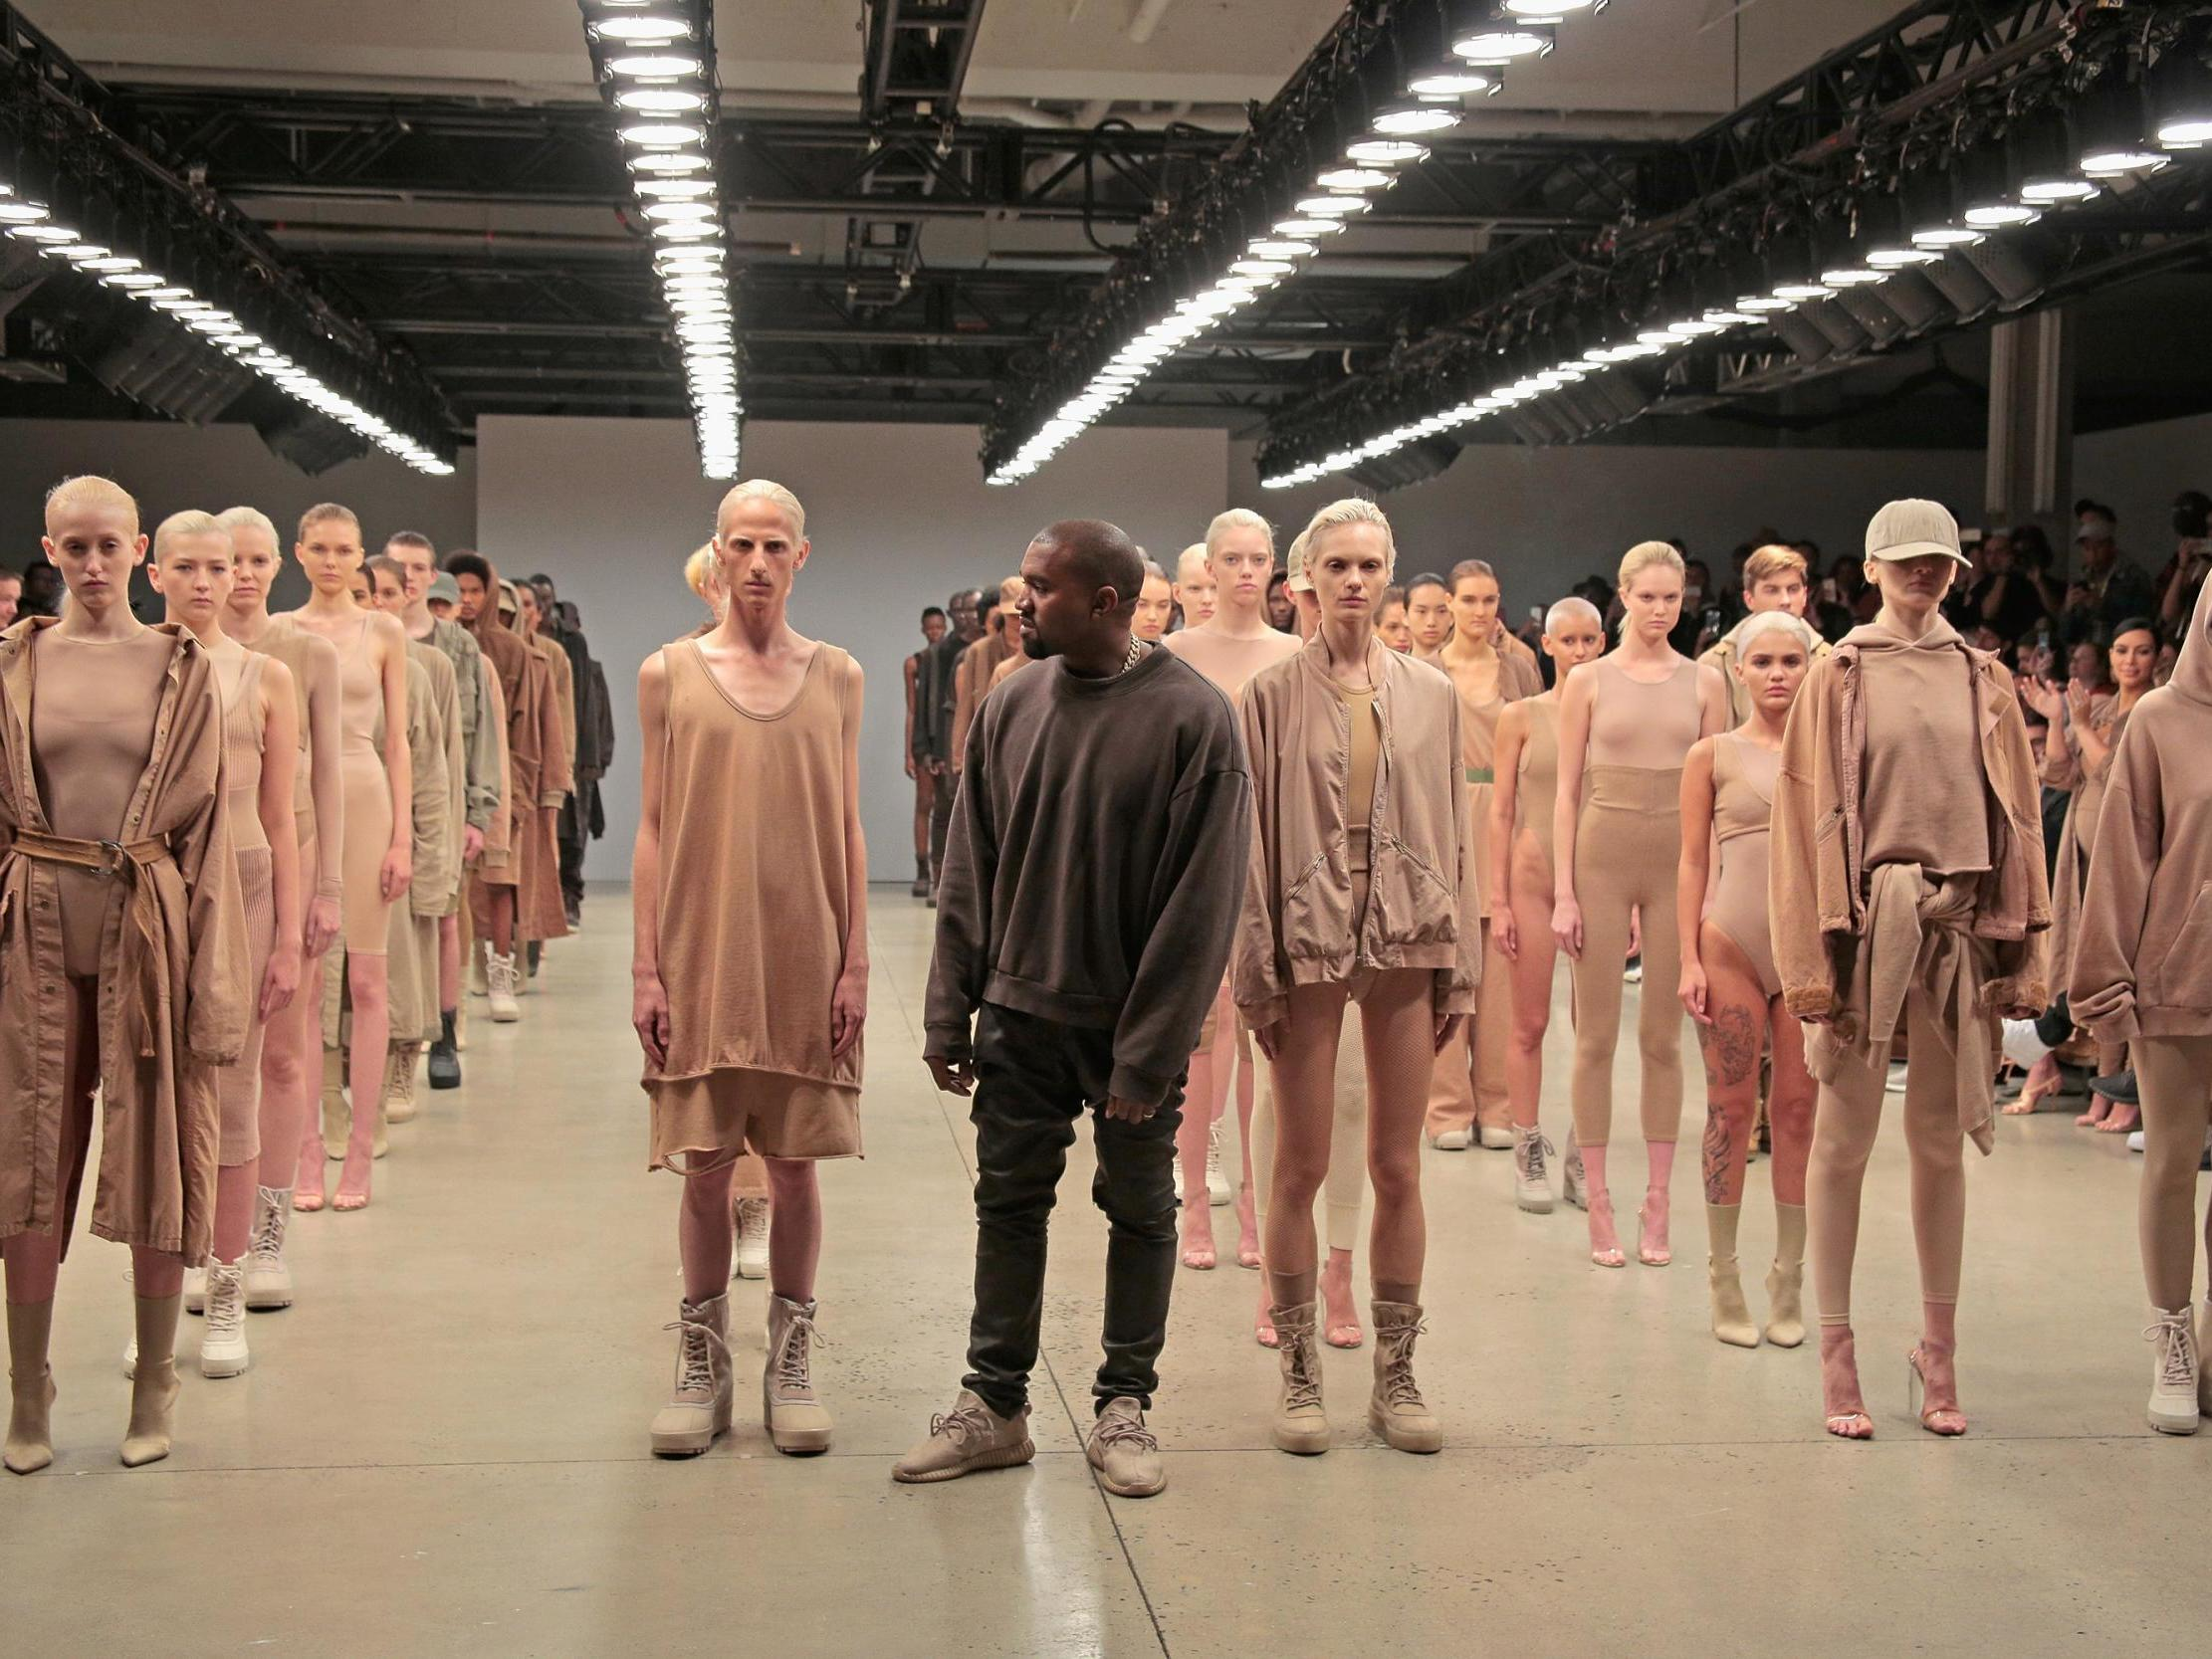 Yeezy Gap, Kanye West's New Project Coming in 2021